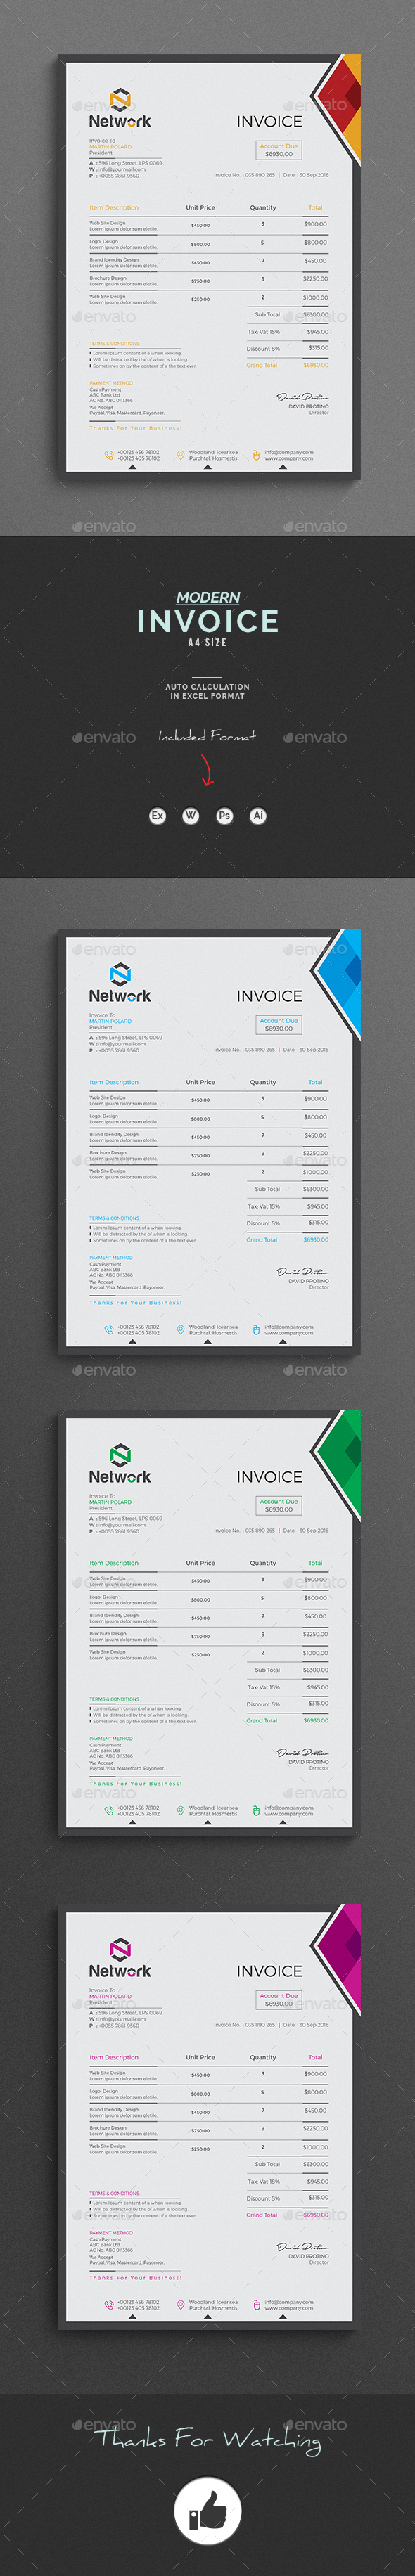 GraphicRiver Invoice 20593538